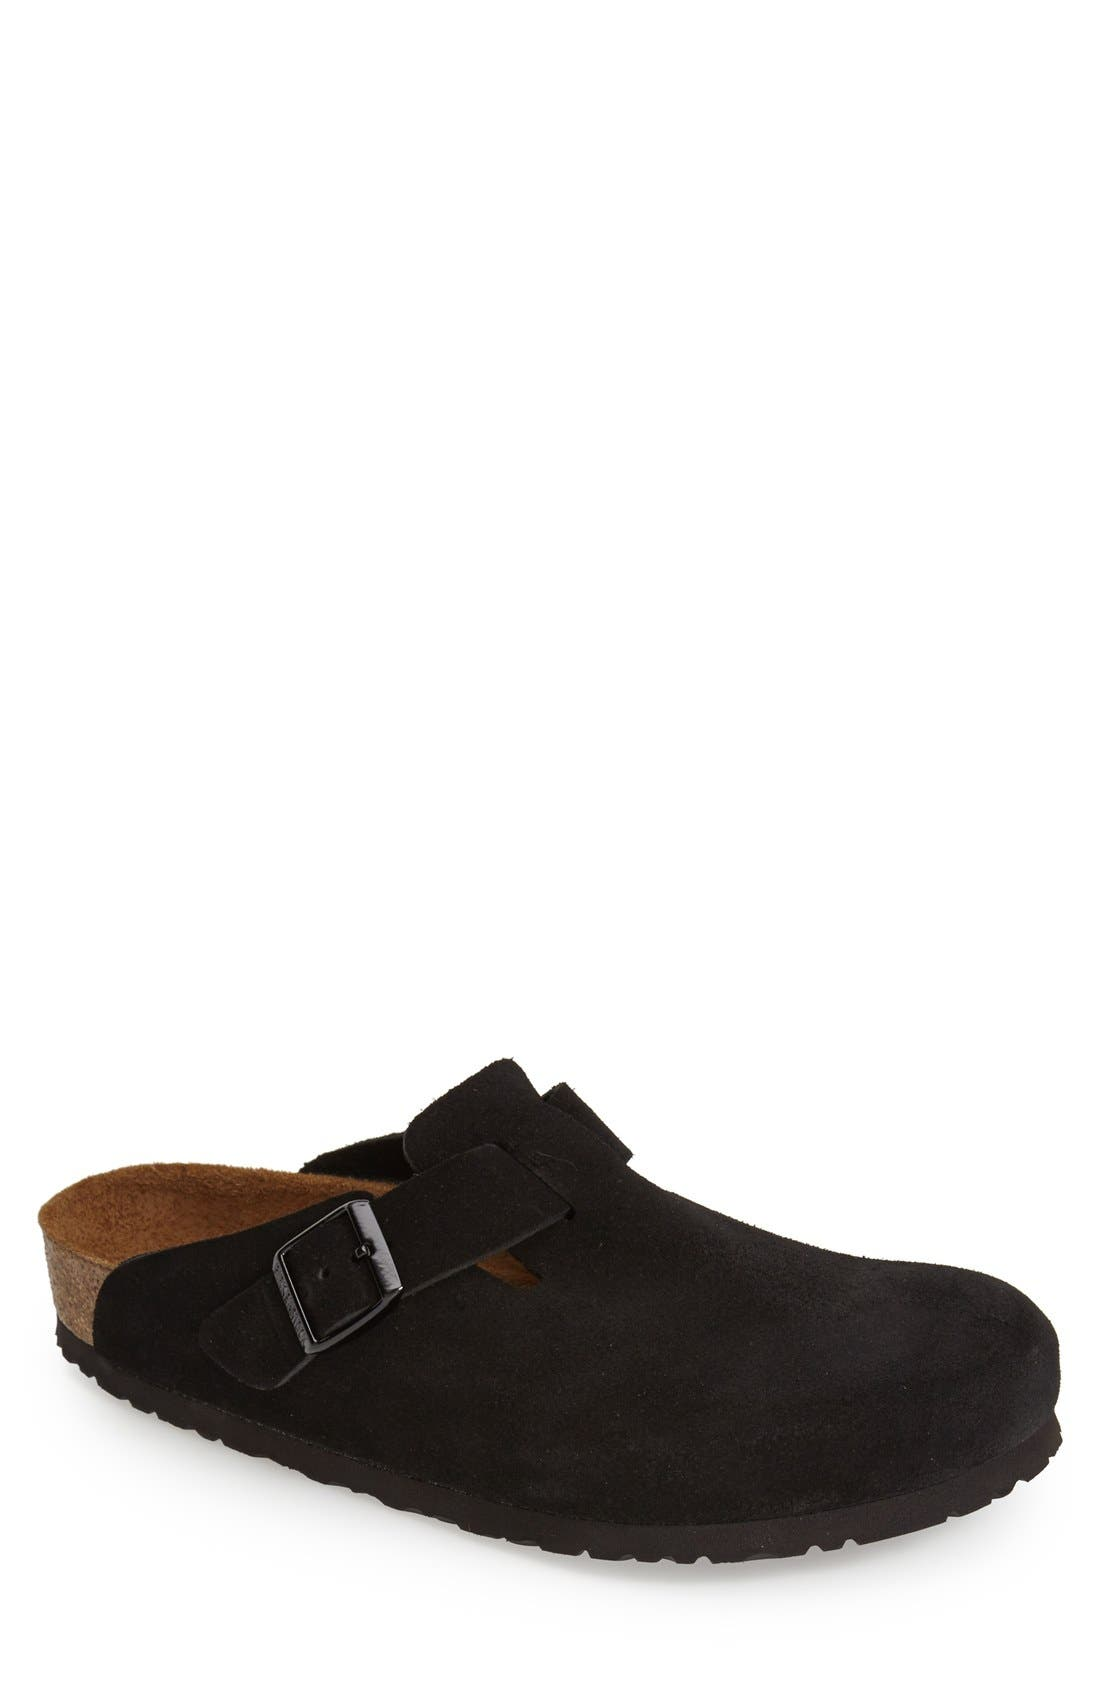 Birkenstock 'Boston Soft' Clog   (Men)